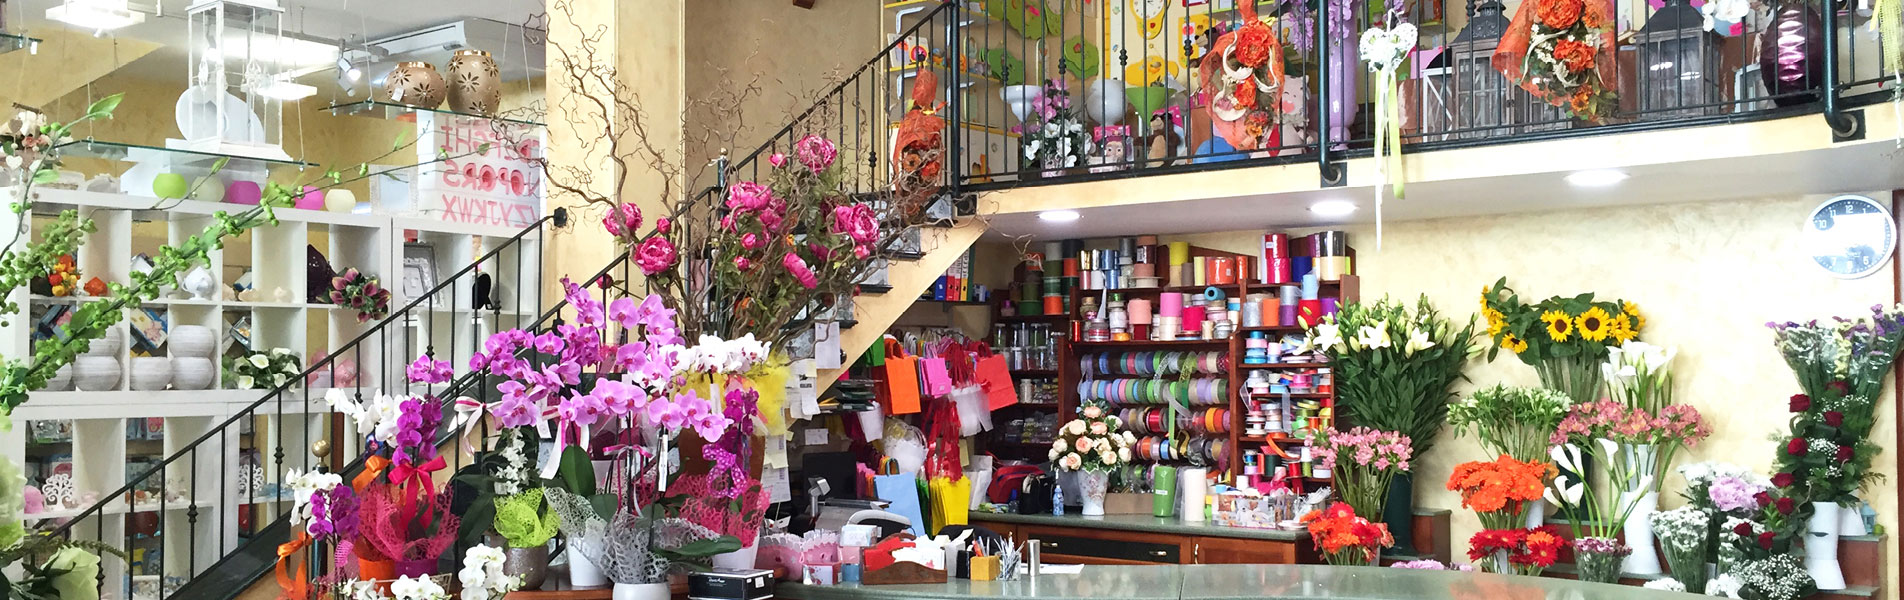 Negozio-Flower-Shop_3